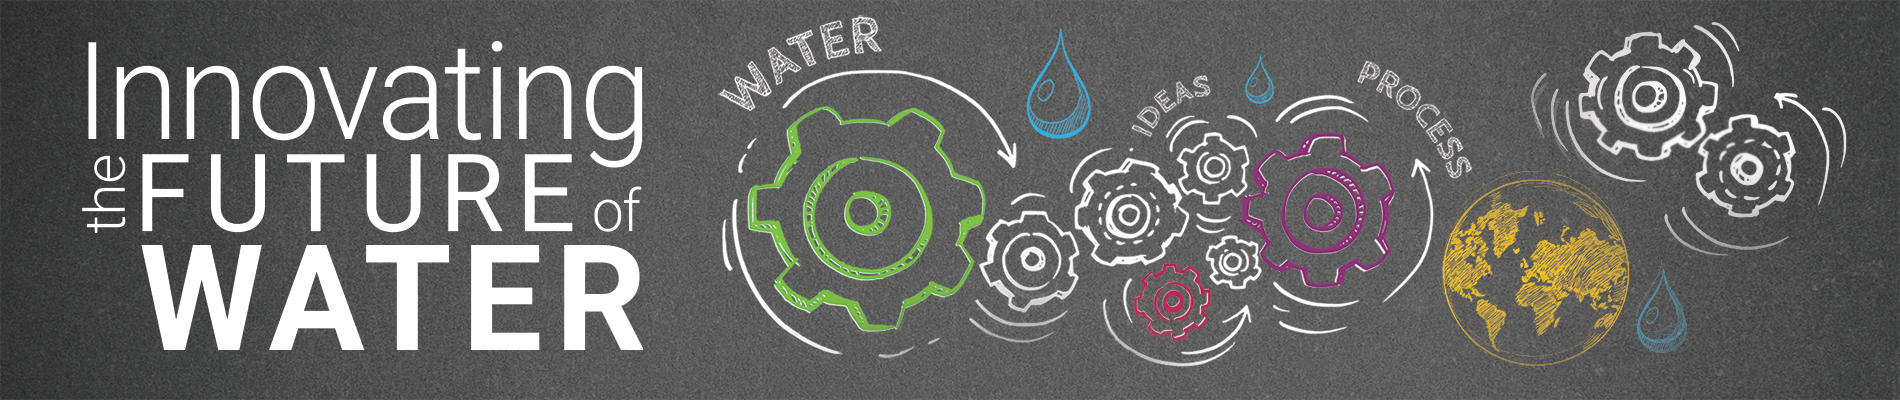 Innovating the Future of Water